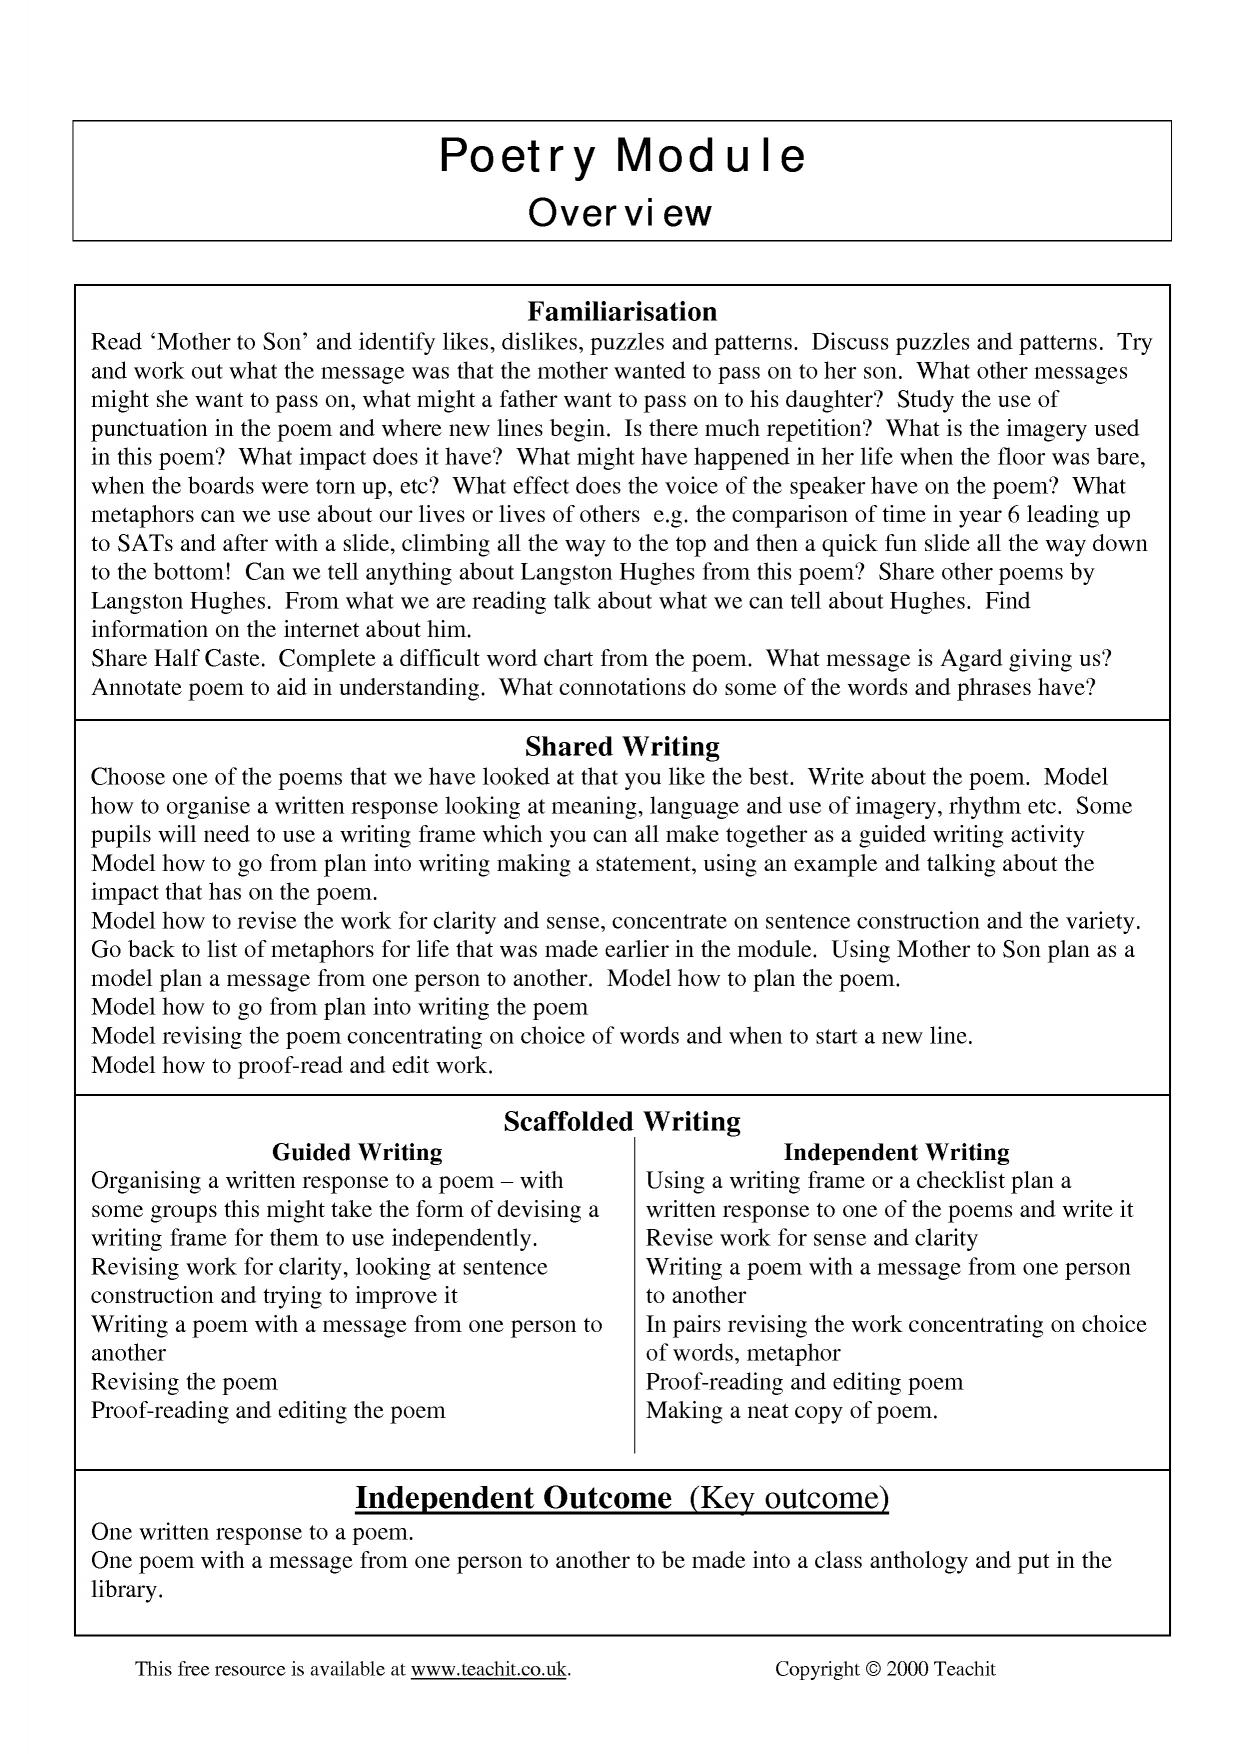 mother to son by langston hughes analysis essay